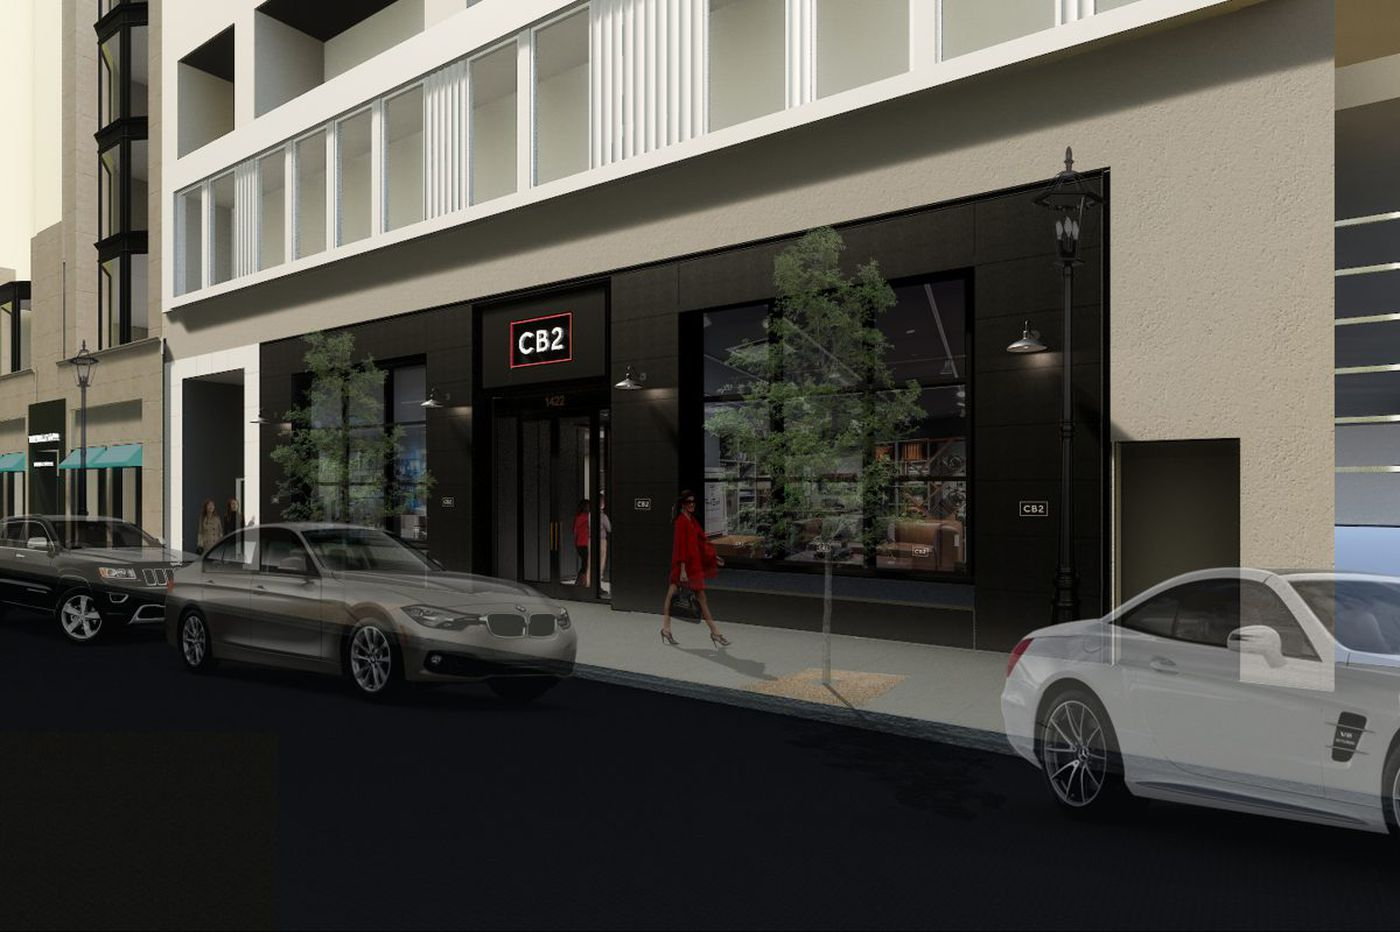 Walnut Gets Another High End Furniture Maker Cb2 Opens Feb 2 Near